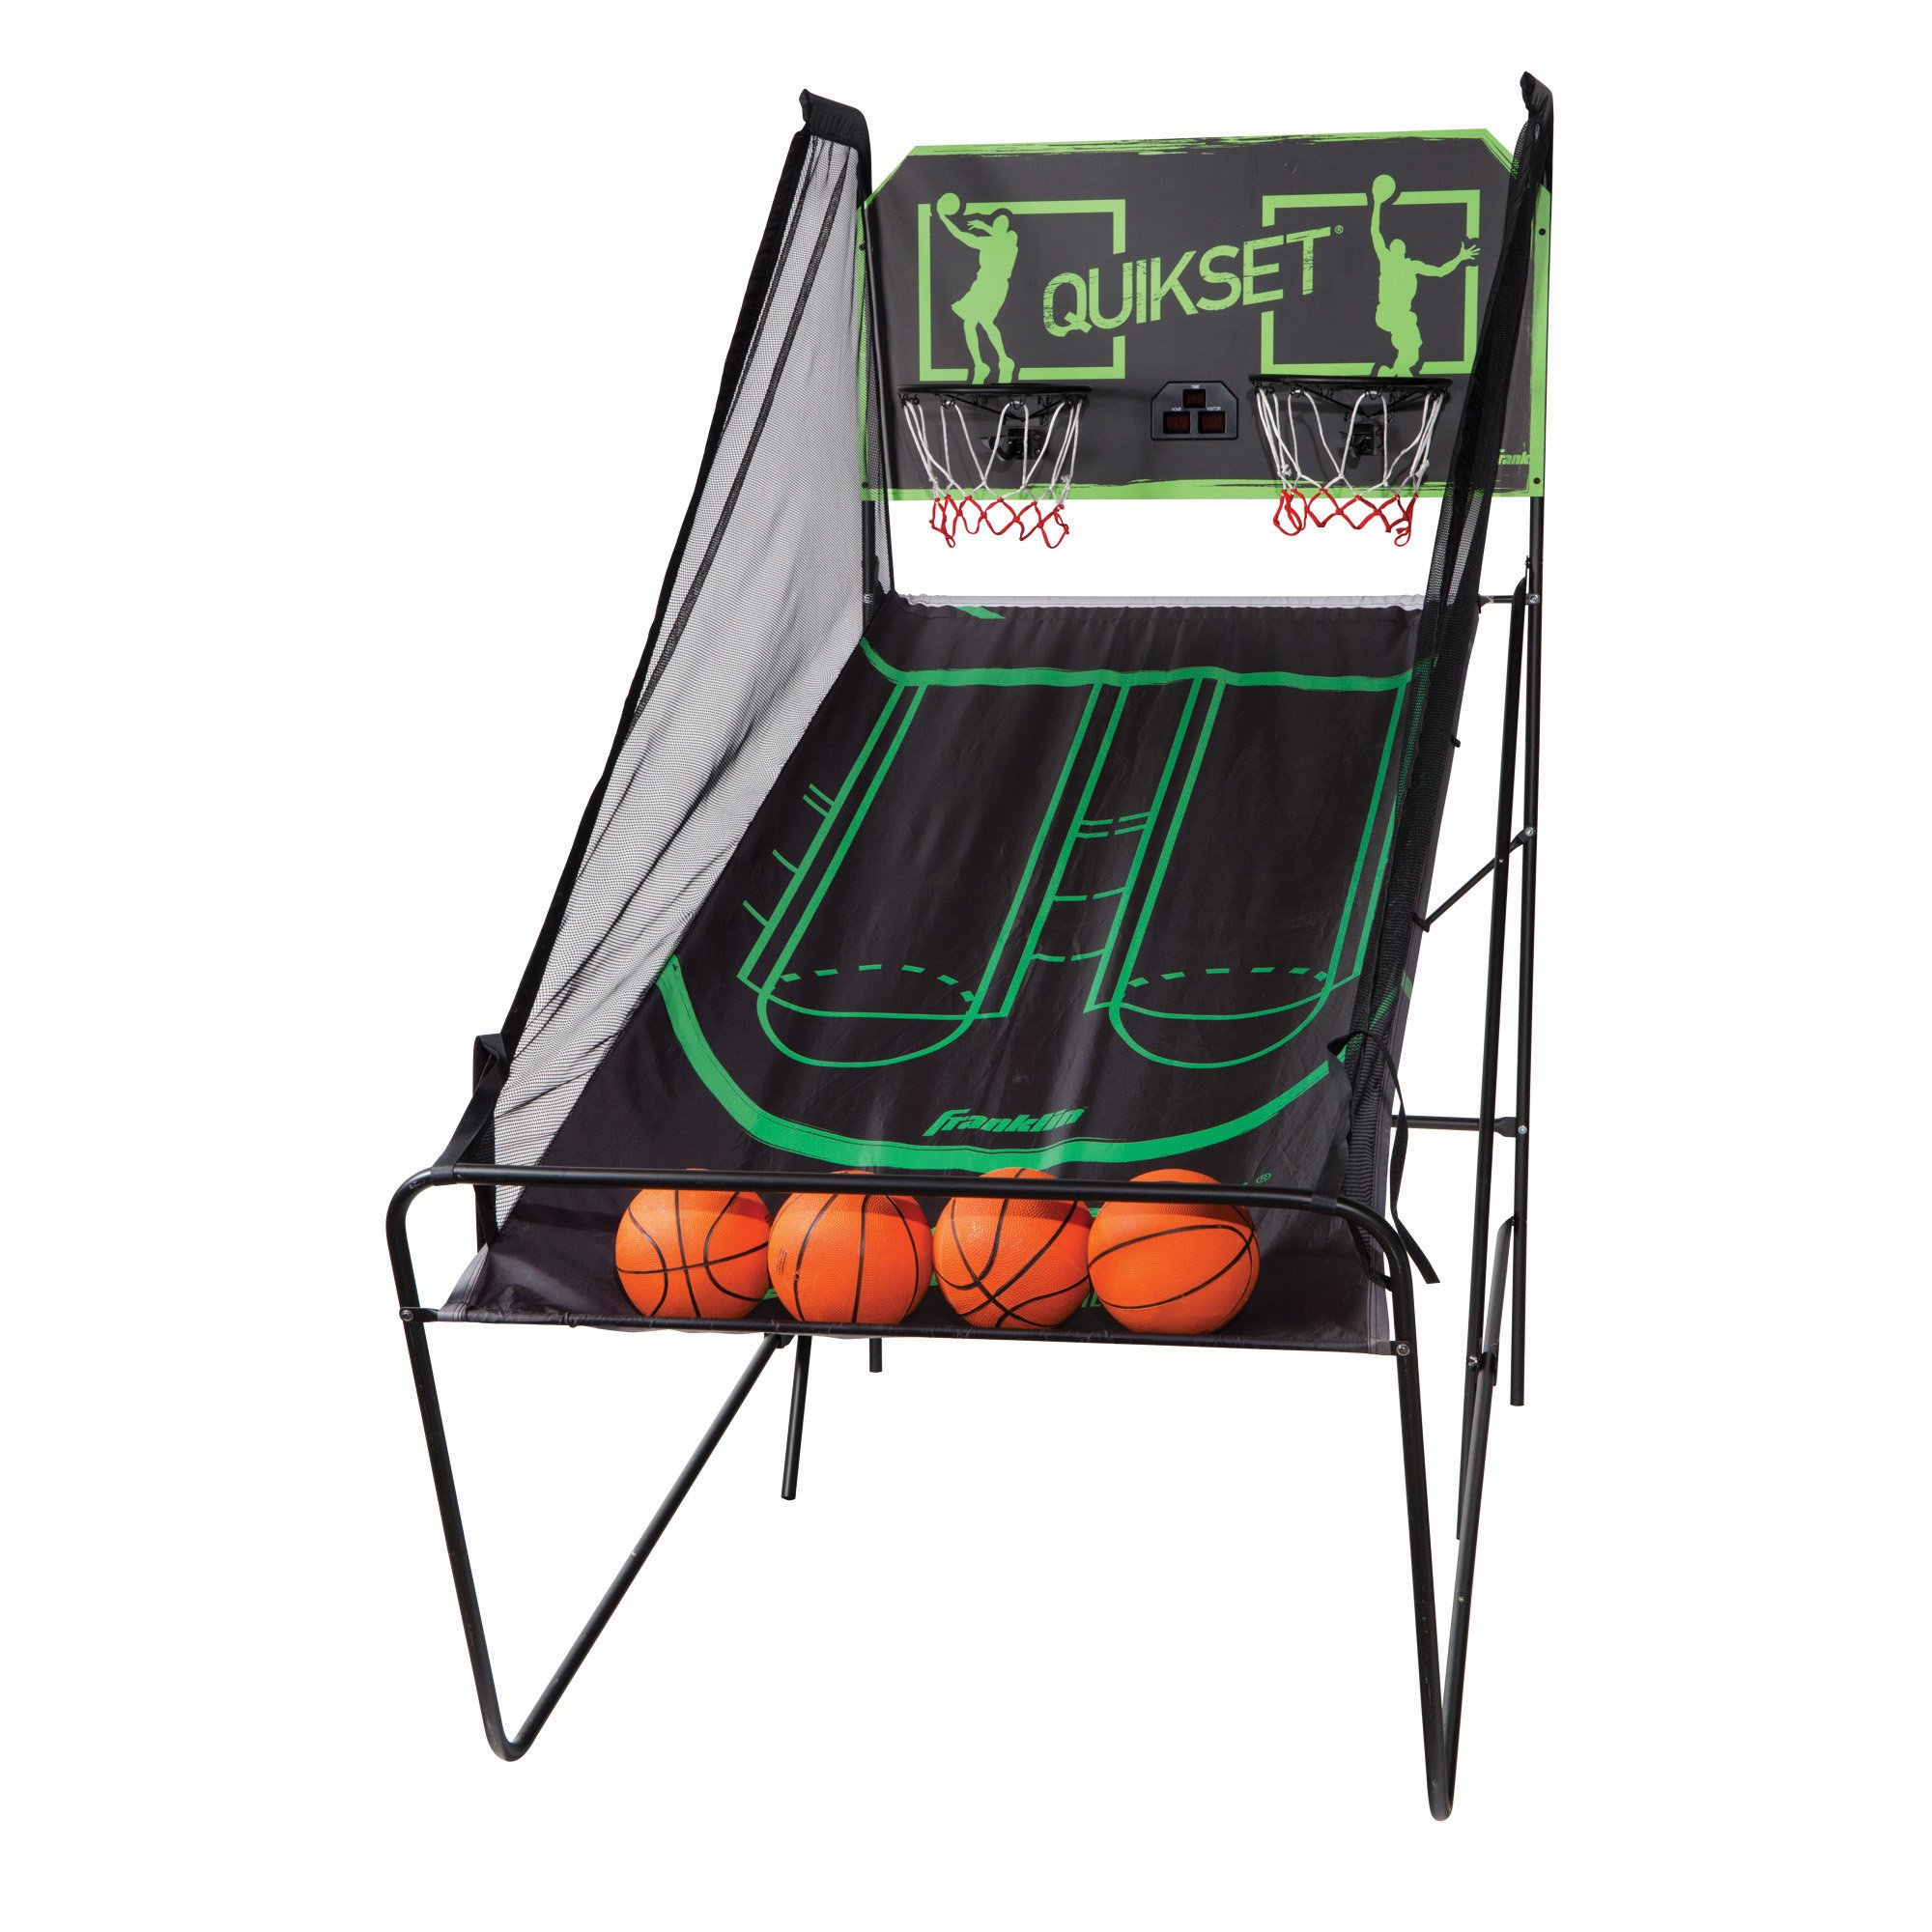 Franklin Sports Quikset Basketball Rebound Pro Set by Franklin Sports